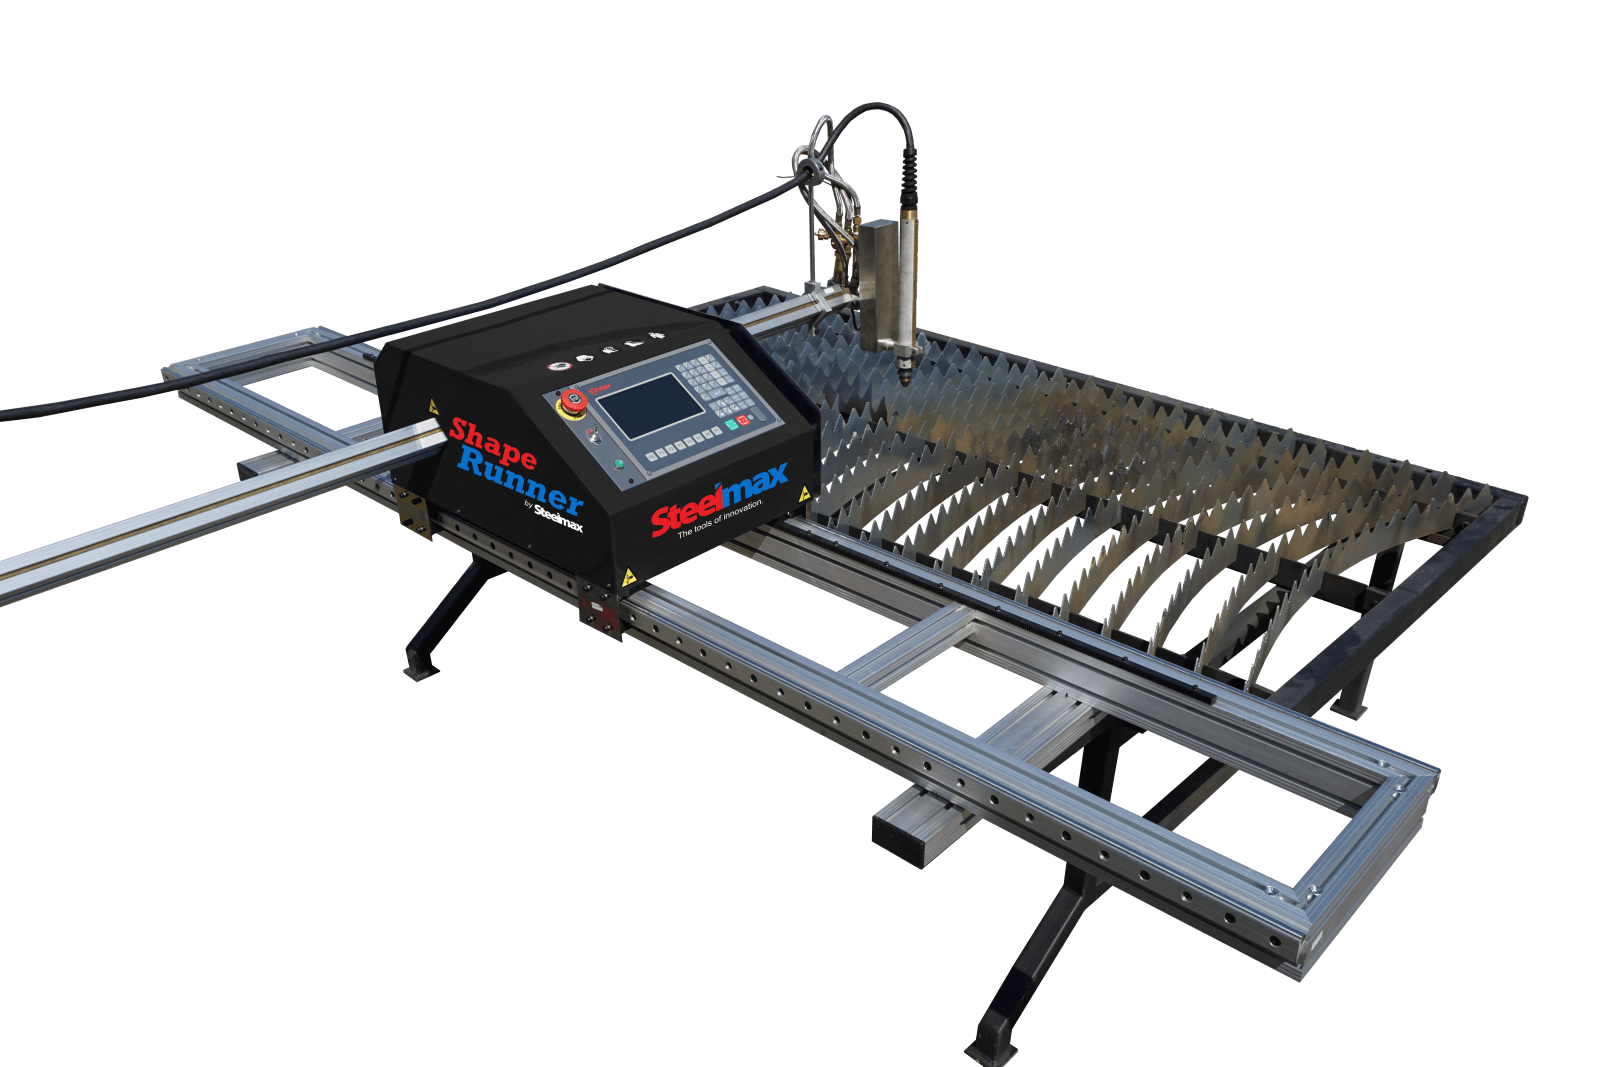 ShapeRunner Two-Axis CNC Cutting System